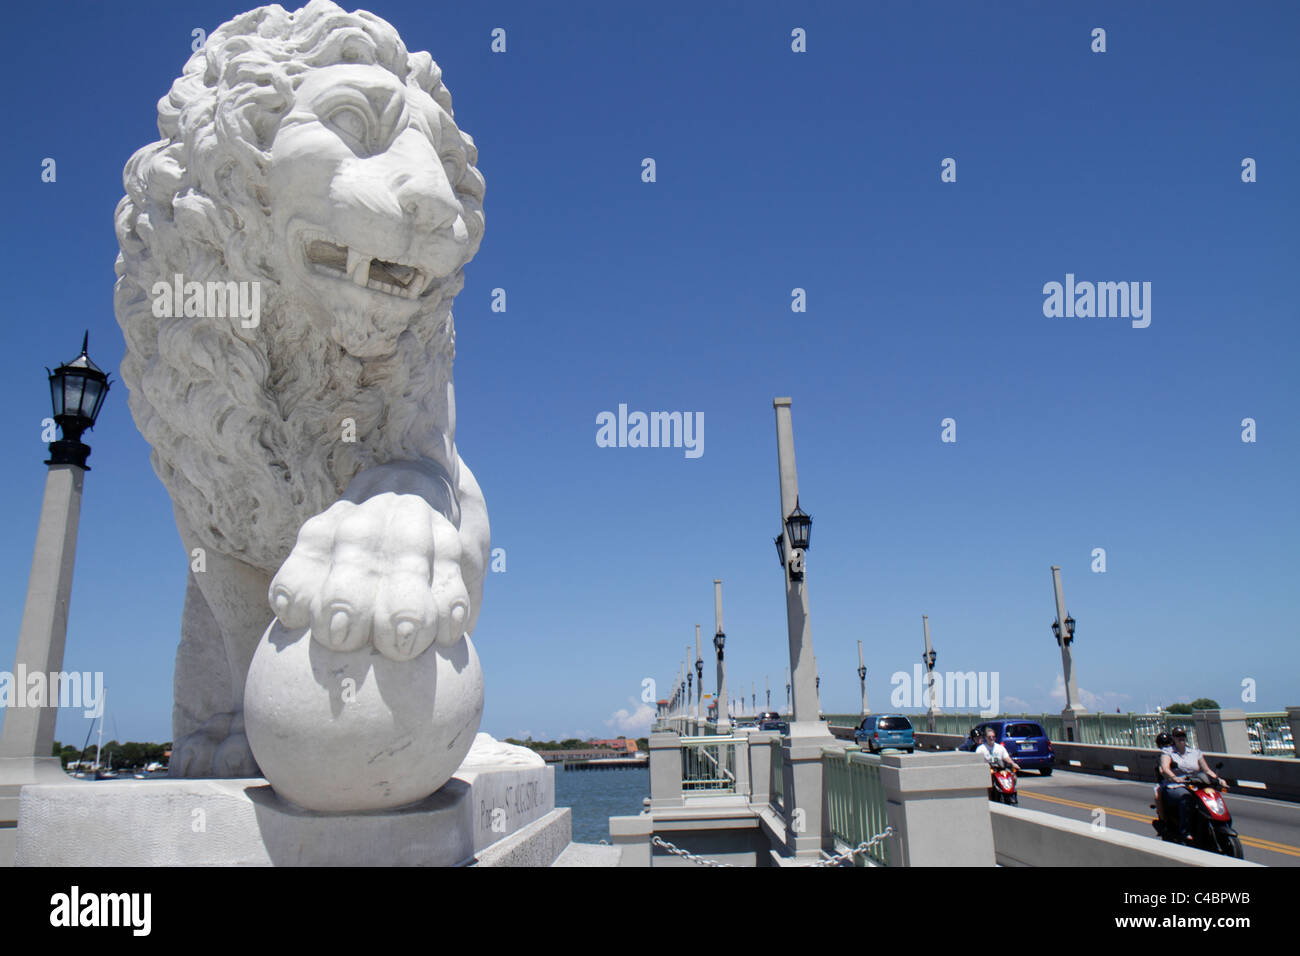 St. Saint Augustine Florida Bridge of Lions State Highway A1A Intracoastal Waterway bascule - Stock Image